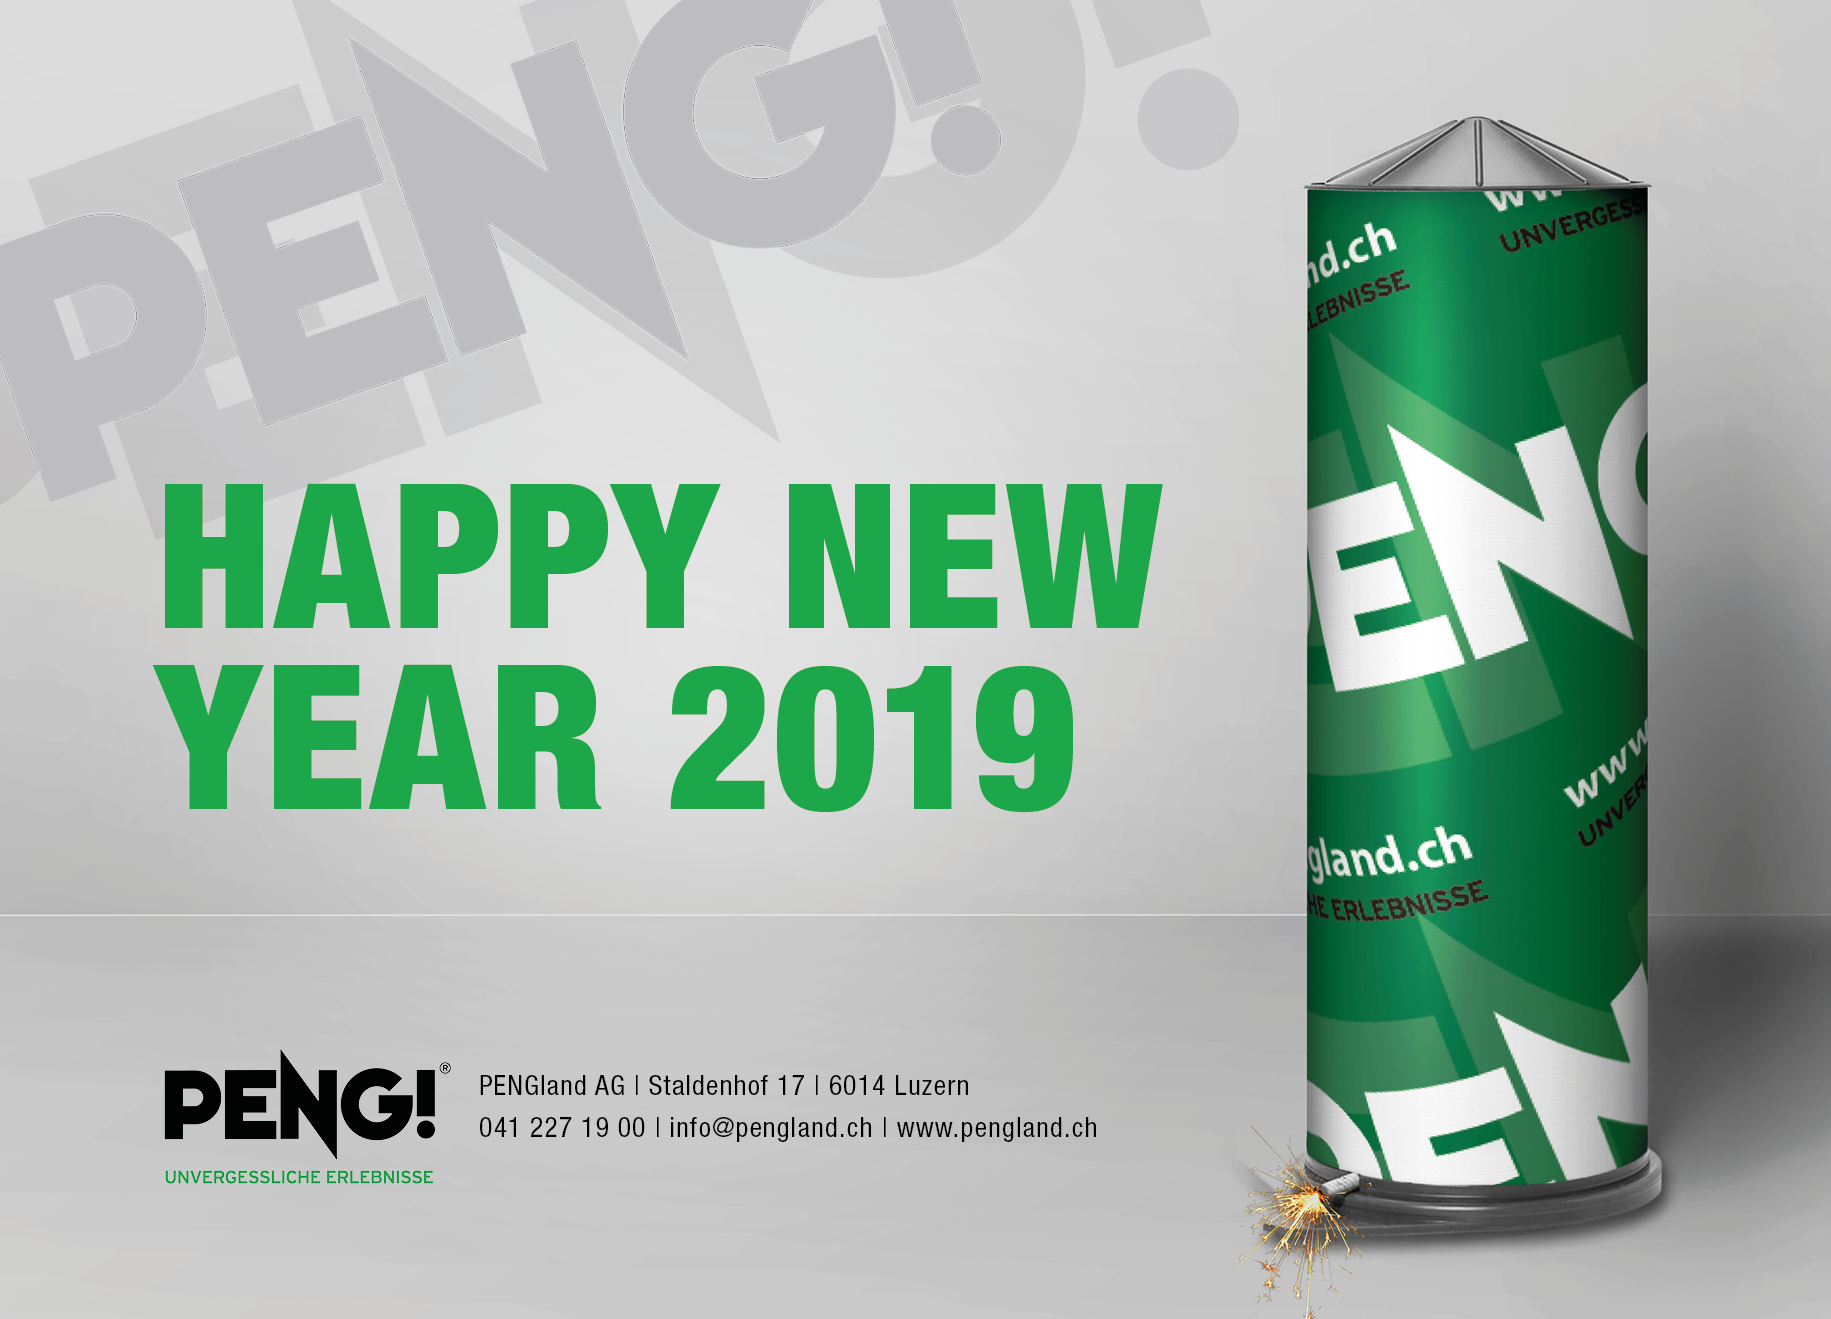 PENGland_Happy New Year 2019.jpg